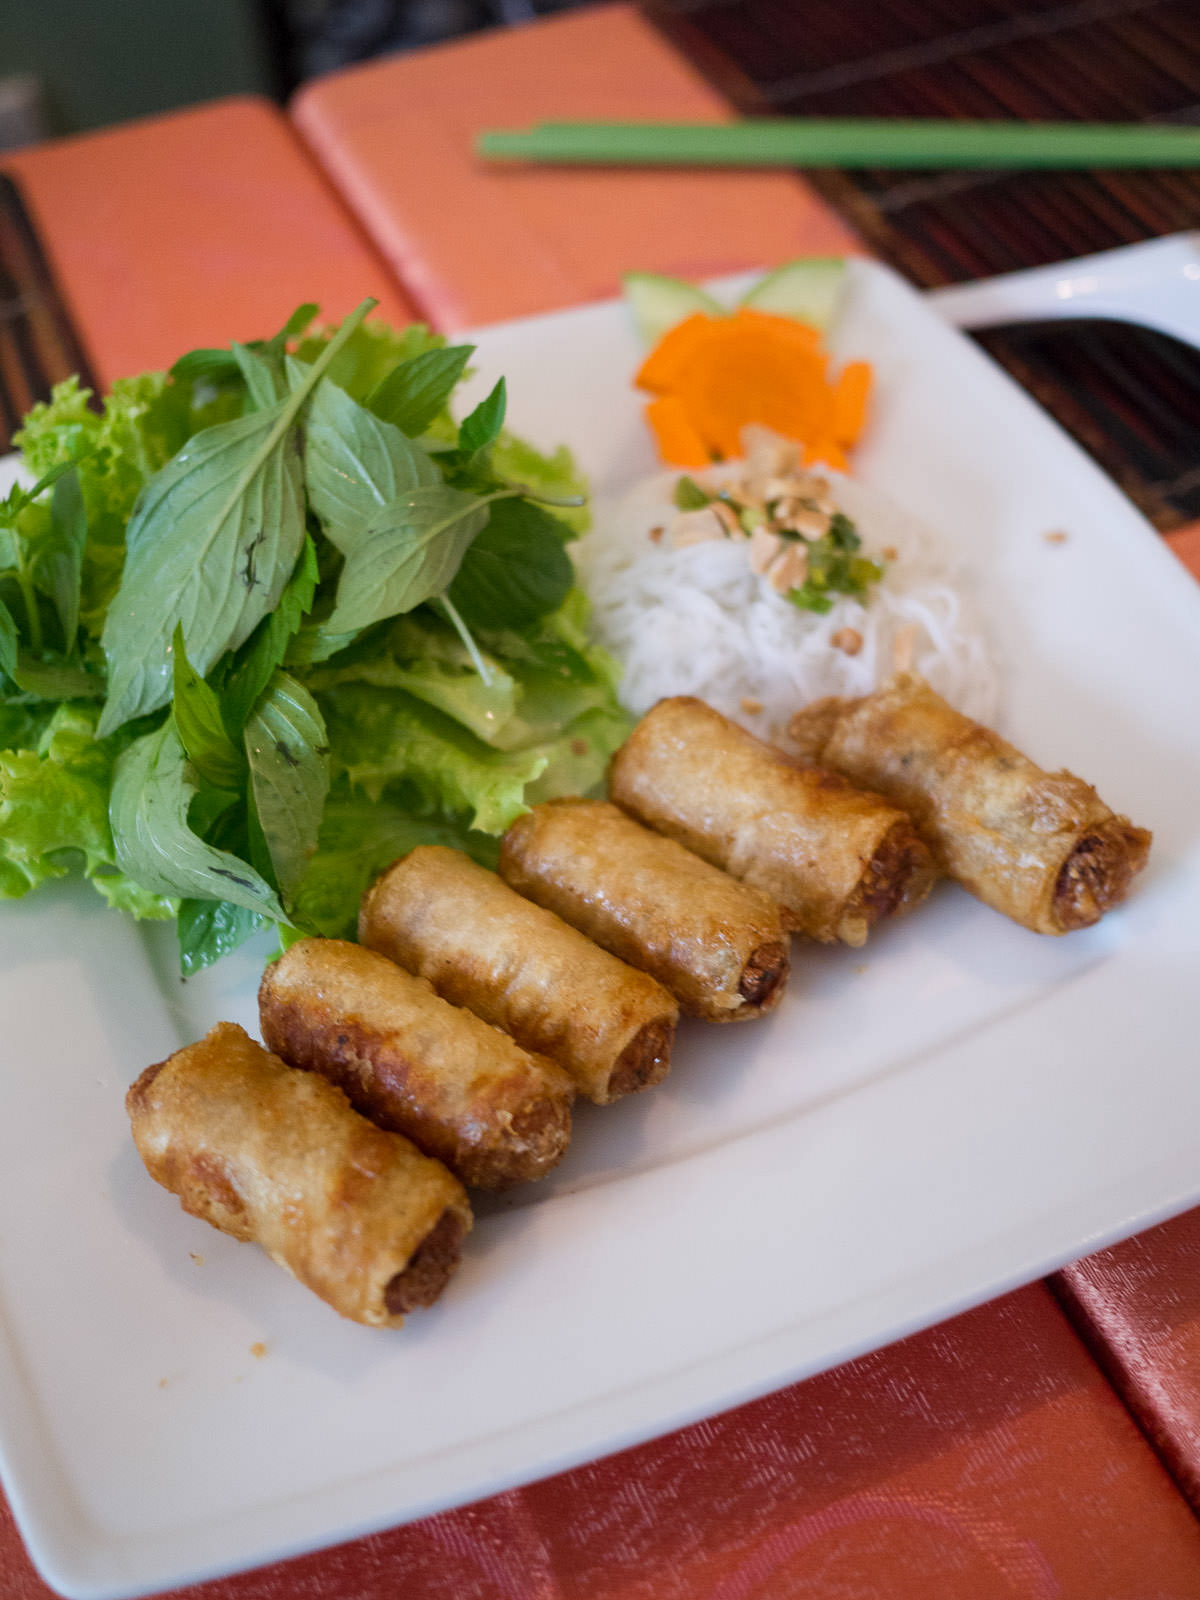 Fried spring rolls with minced shrimps and pork